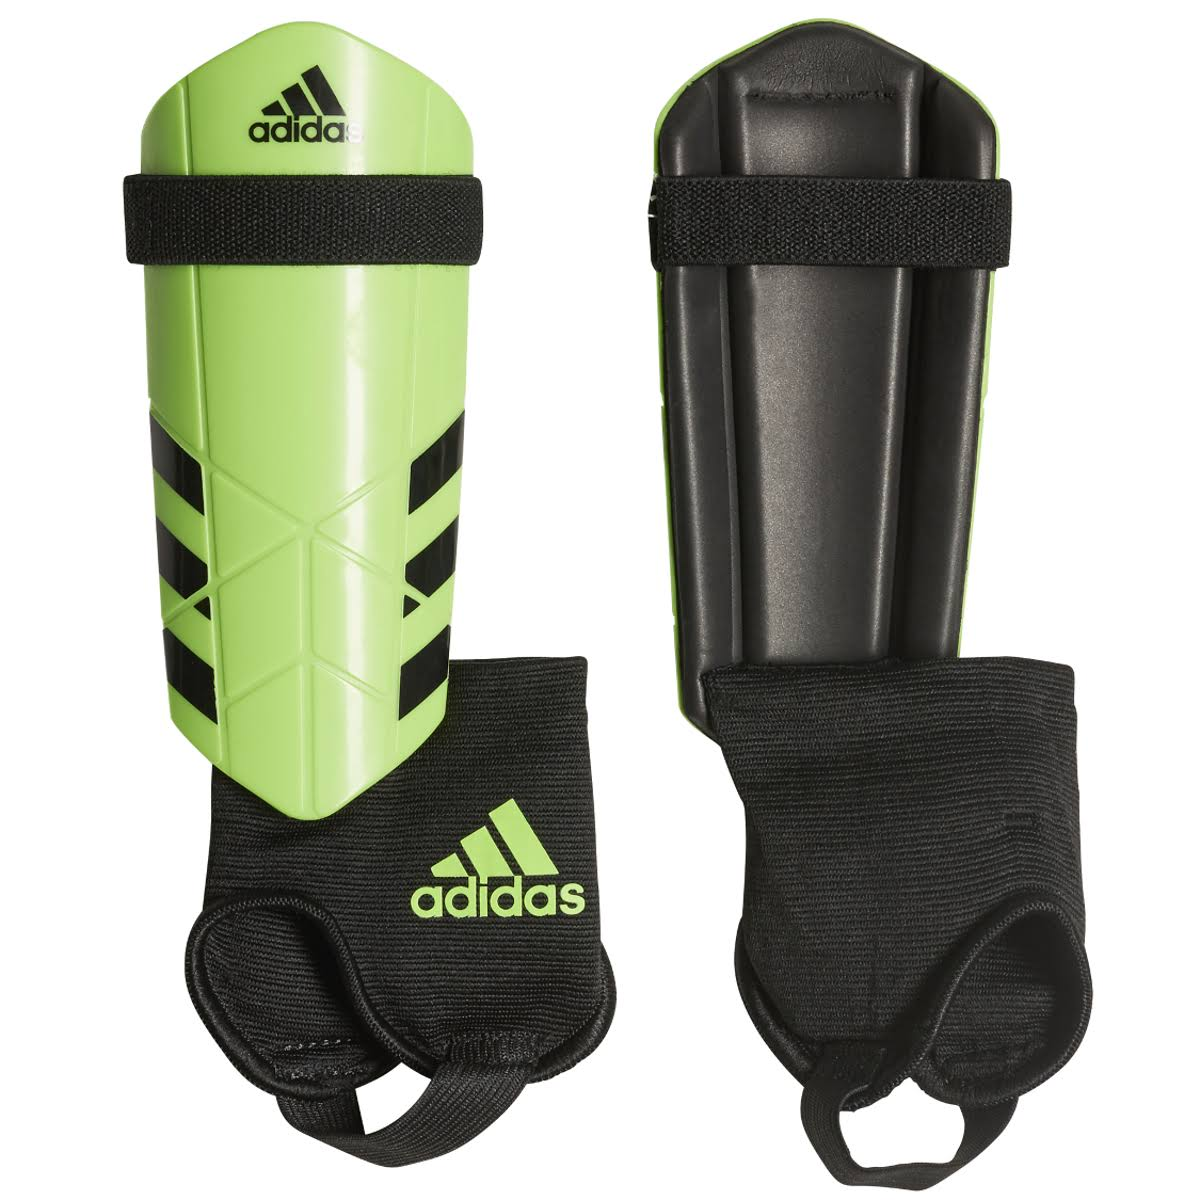 Adidas Performance Ghost Youth Shin Guards - Solar Green, Medium